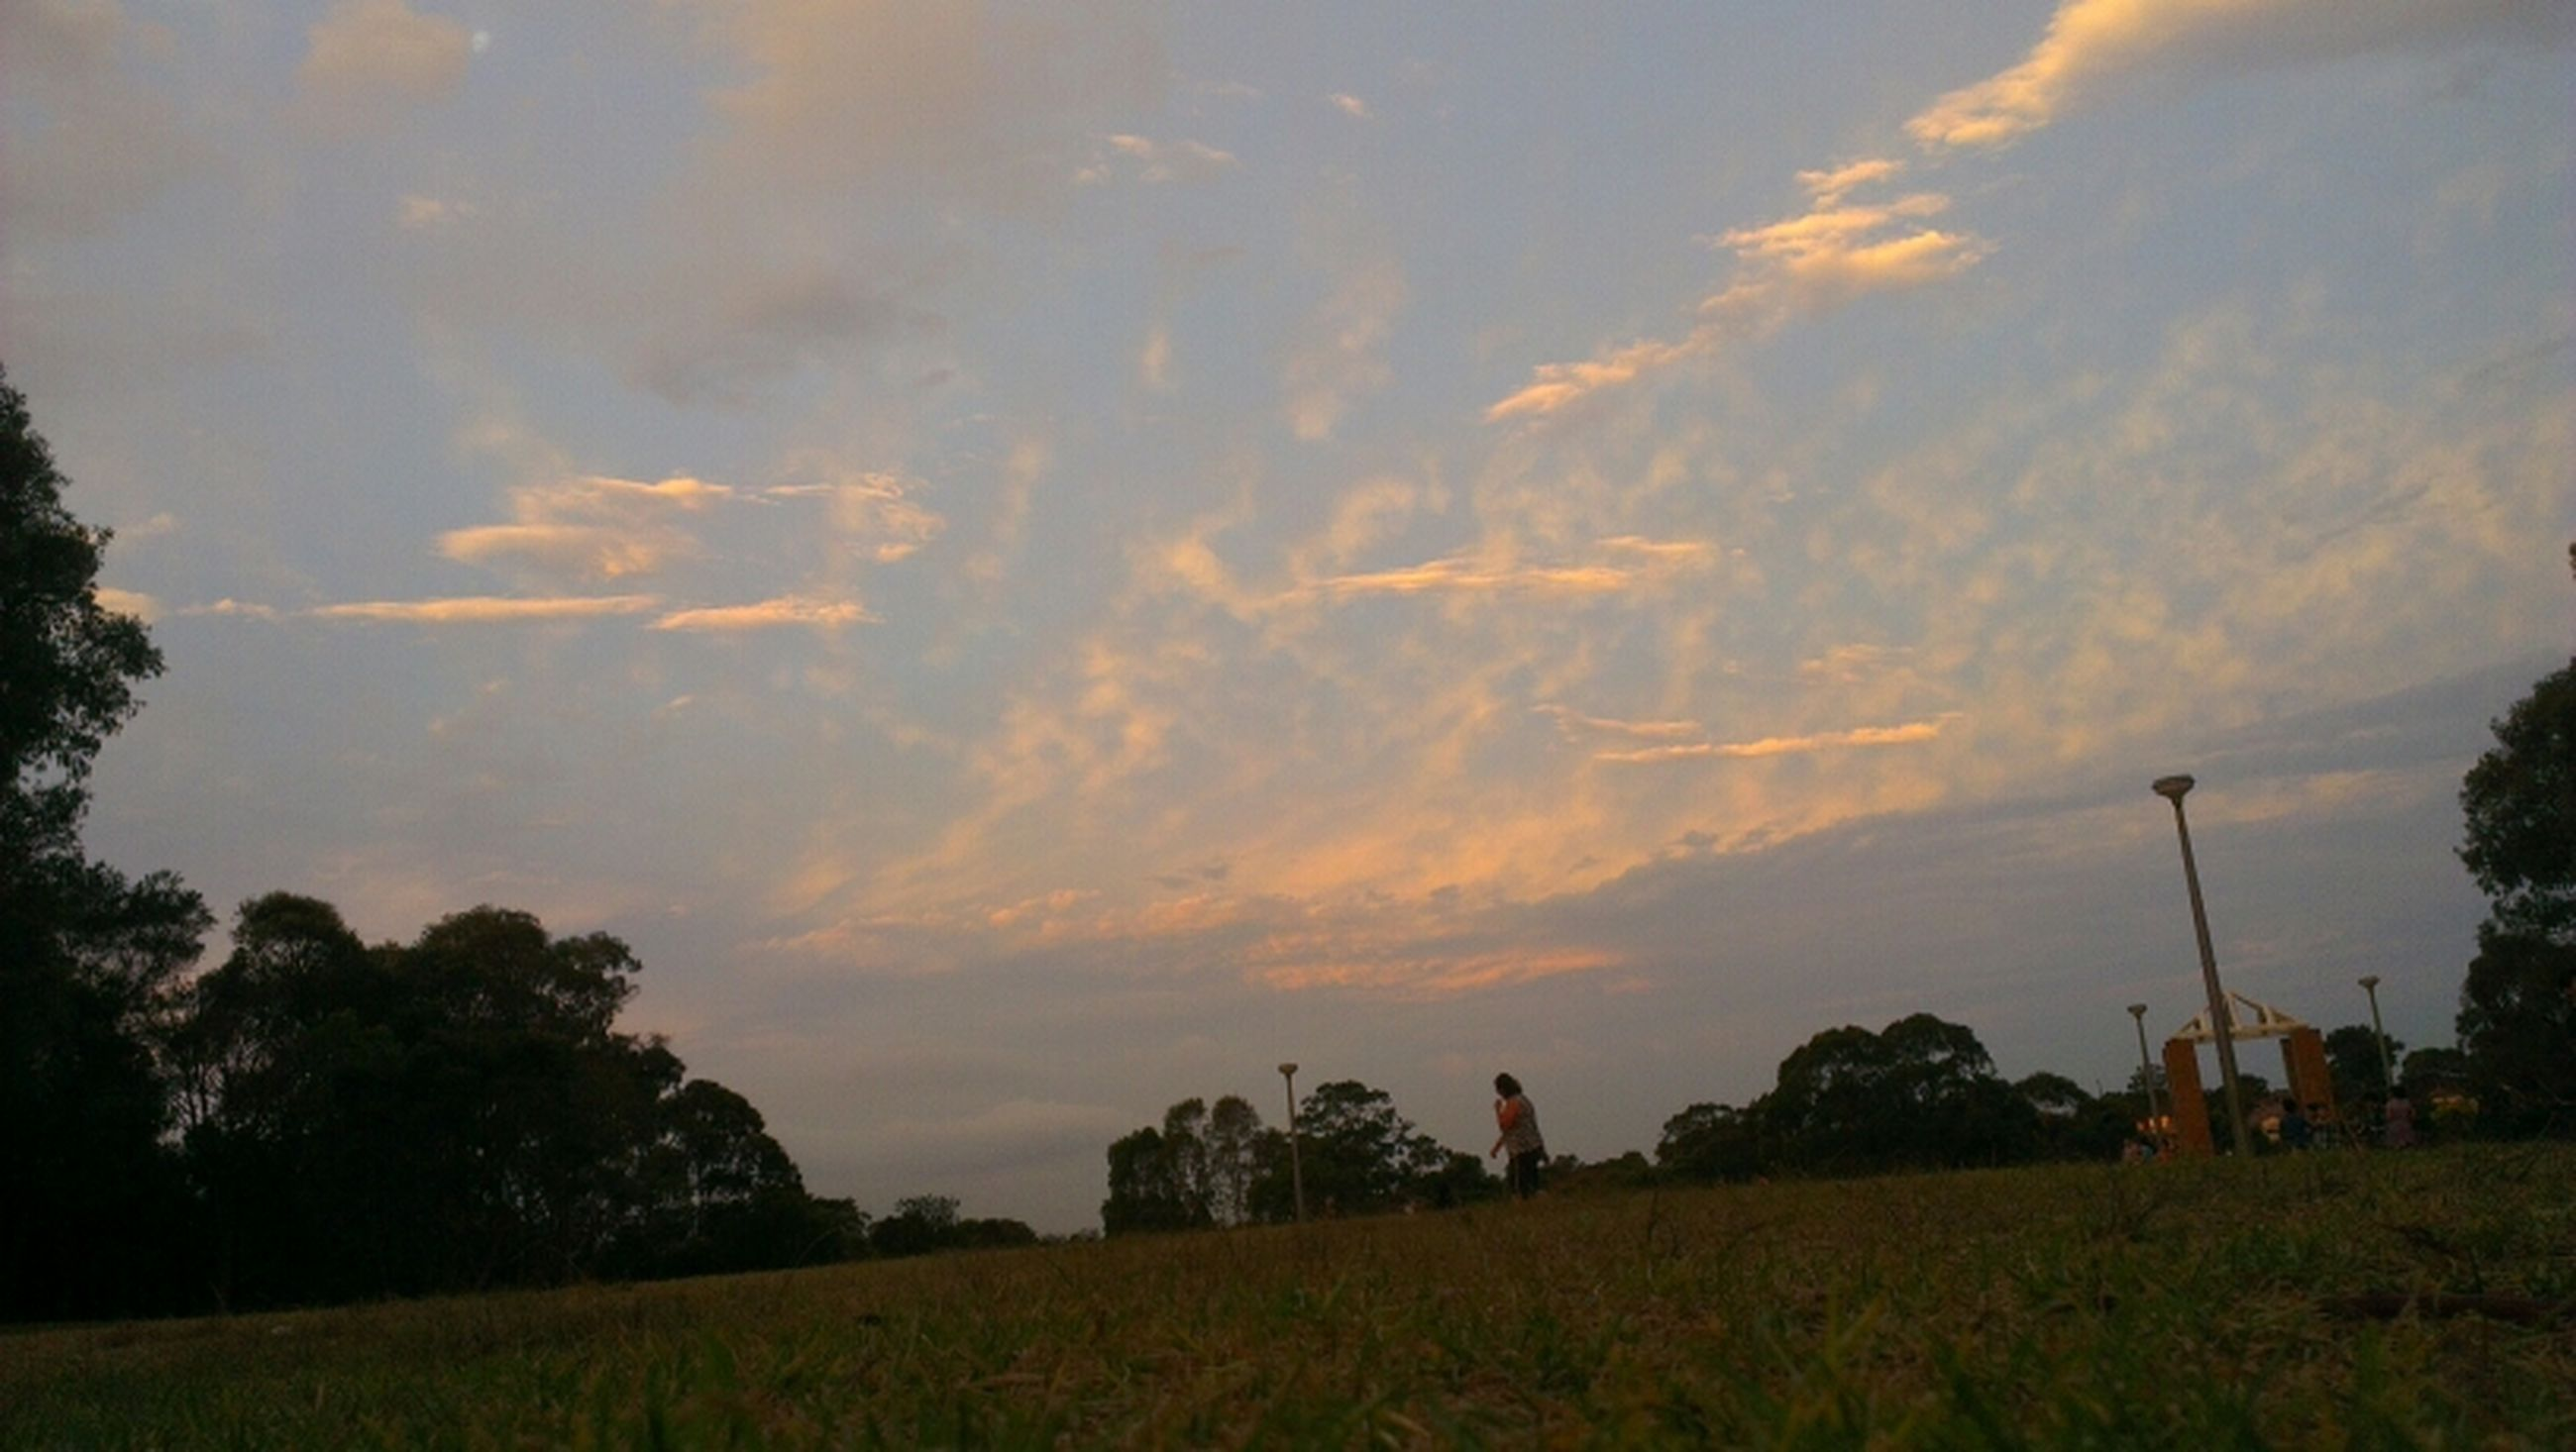 sky, sunset, tranquil scene, landscape, tranquility, tree, scenics, field, beauty in nature, cloud - sky, nature, silhouette, grass, idyllic, cloud, growth, cloudy, non-urban scene, orange color, outdoors